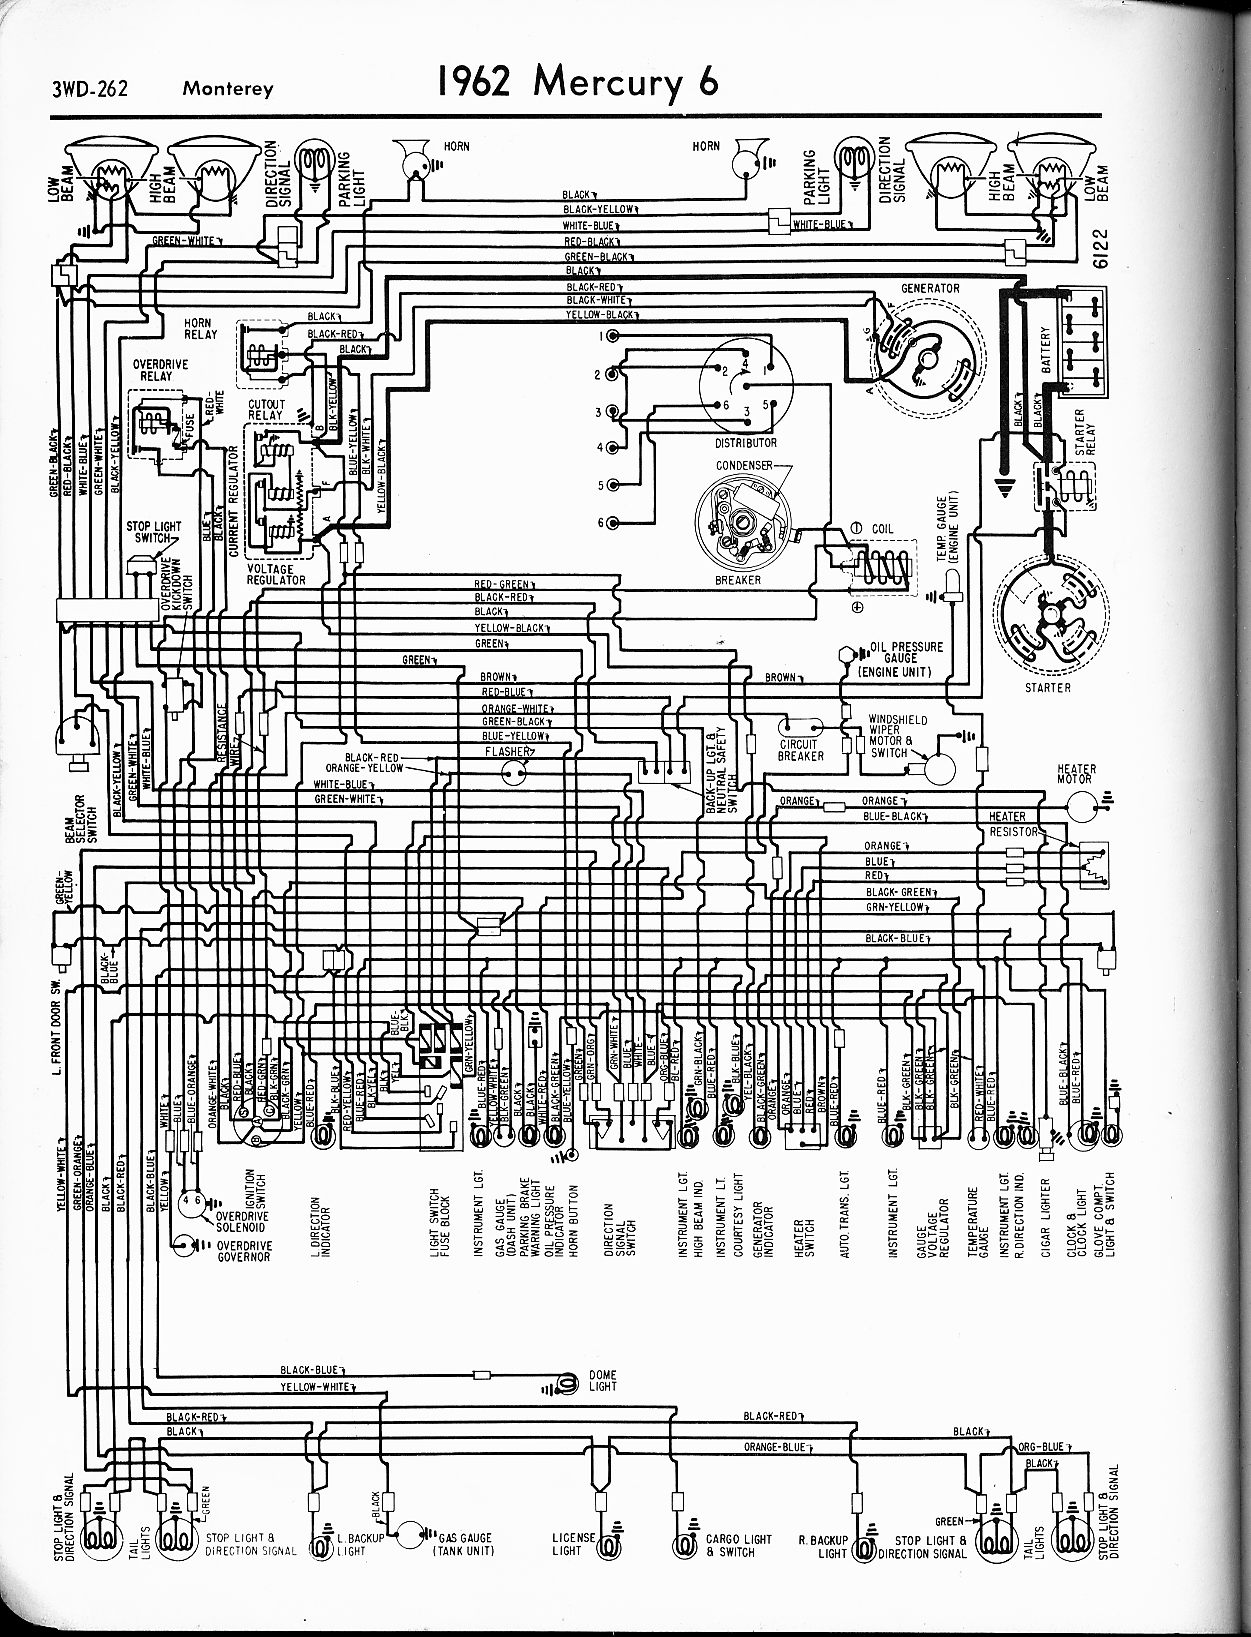 72 Buick Ignition Switch Wiring Diagram Start Building A Toyota Mercury Diagrams The Old Car Manual Project Rh Oldcarmanualproject Com Jeep